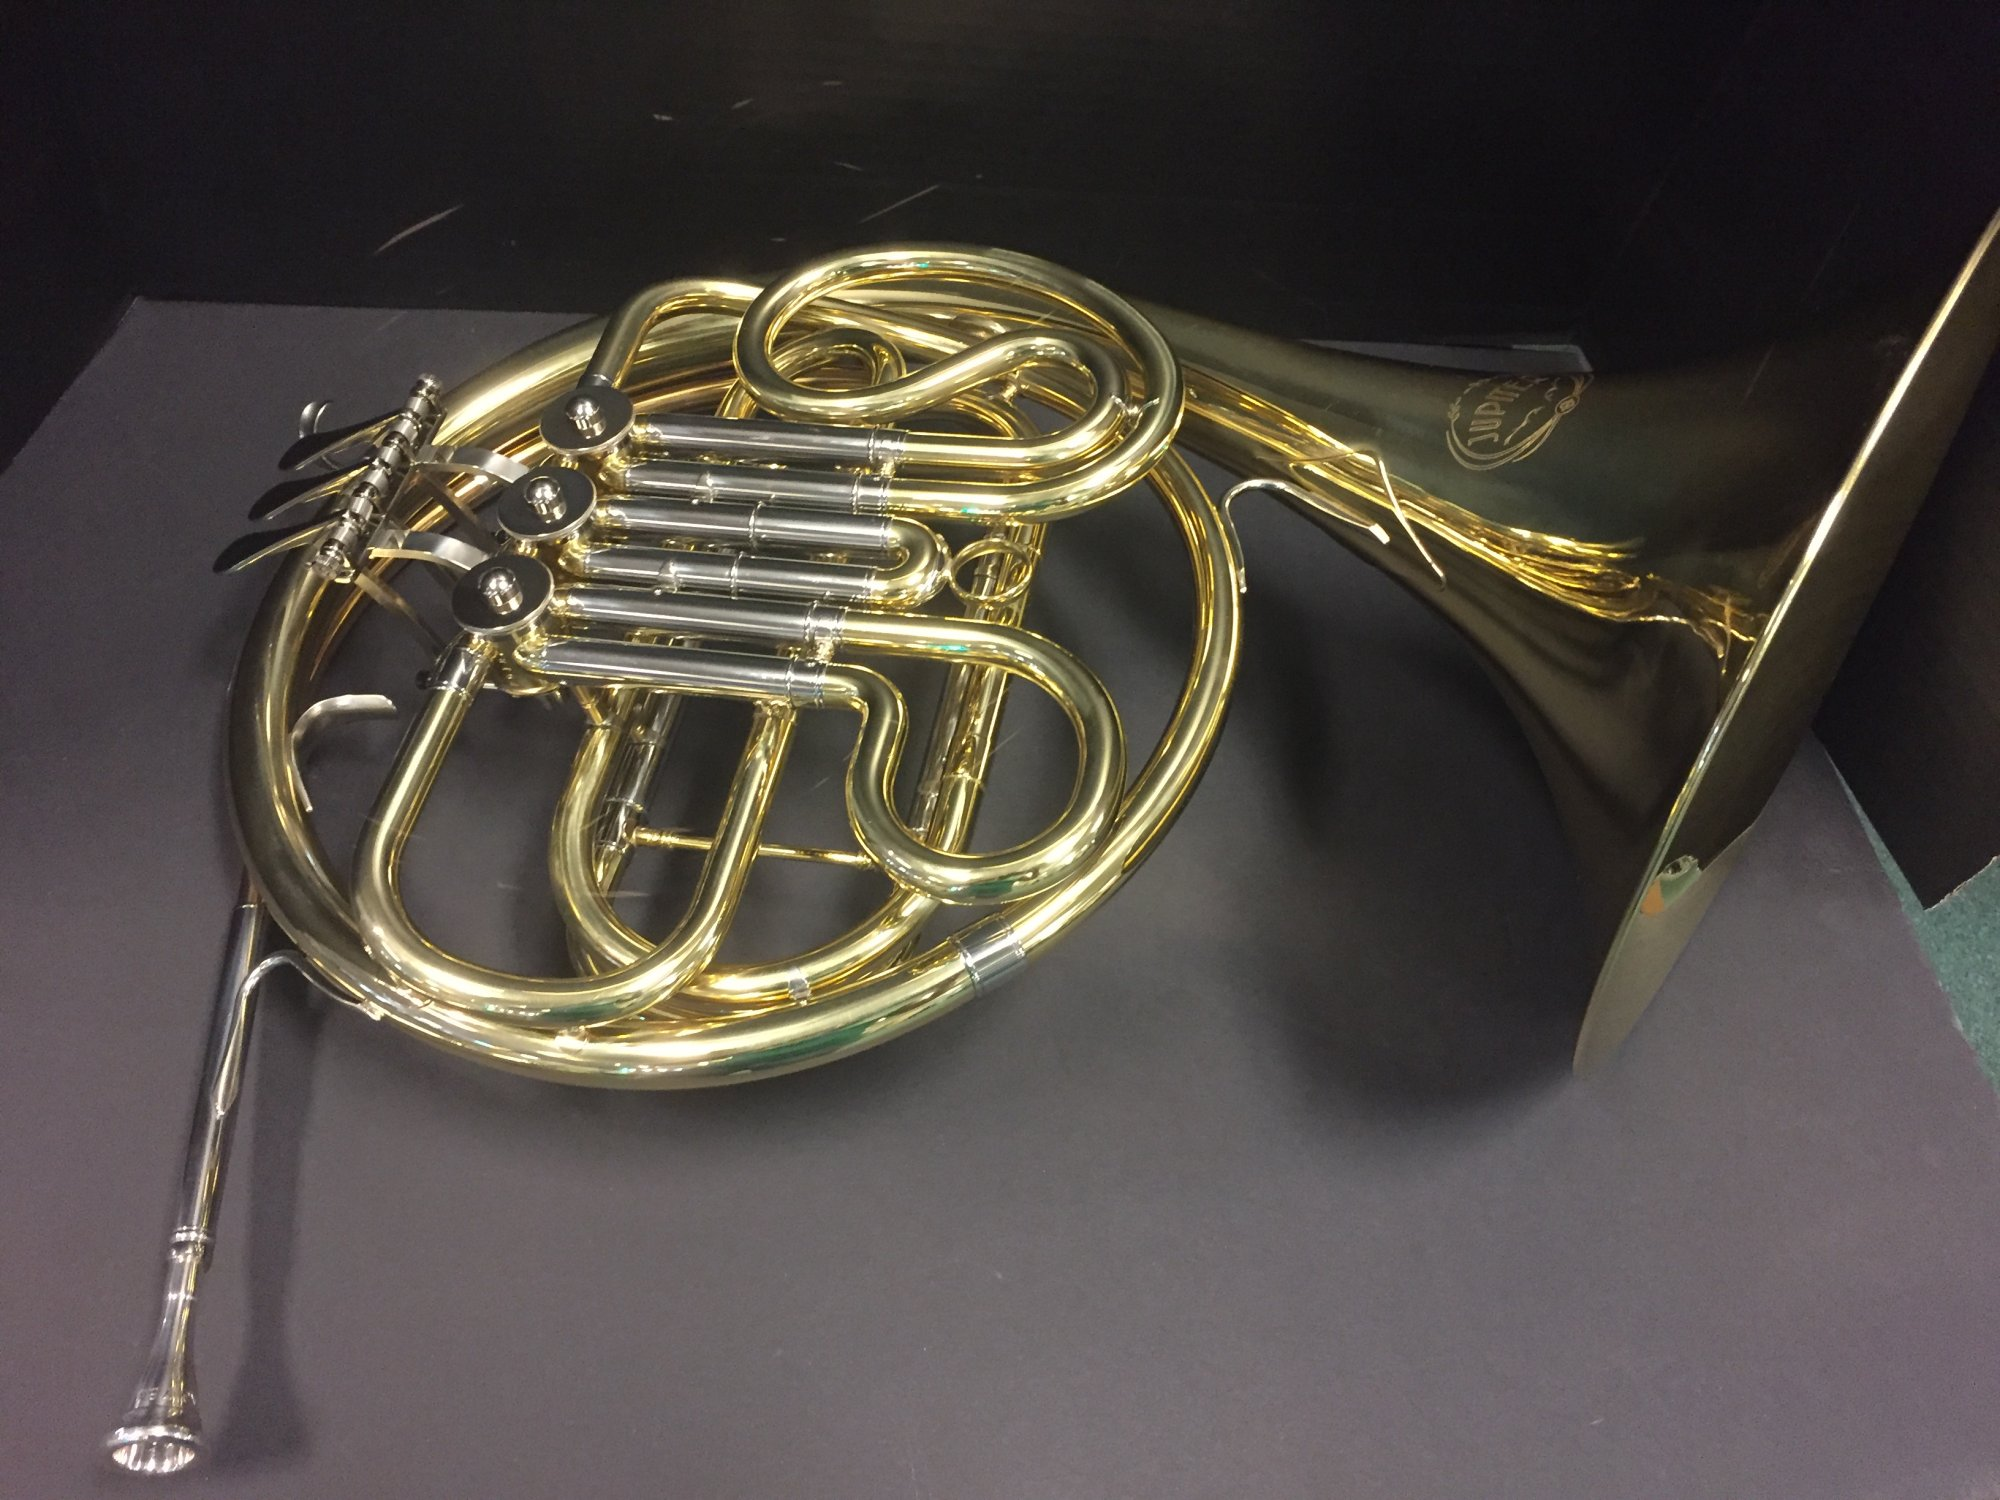 Jupiter JHR 752 L Single French Horn